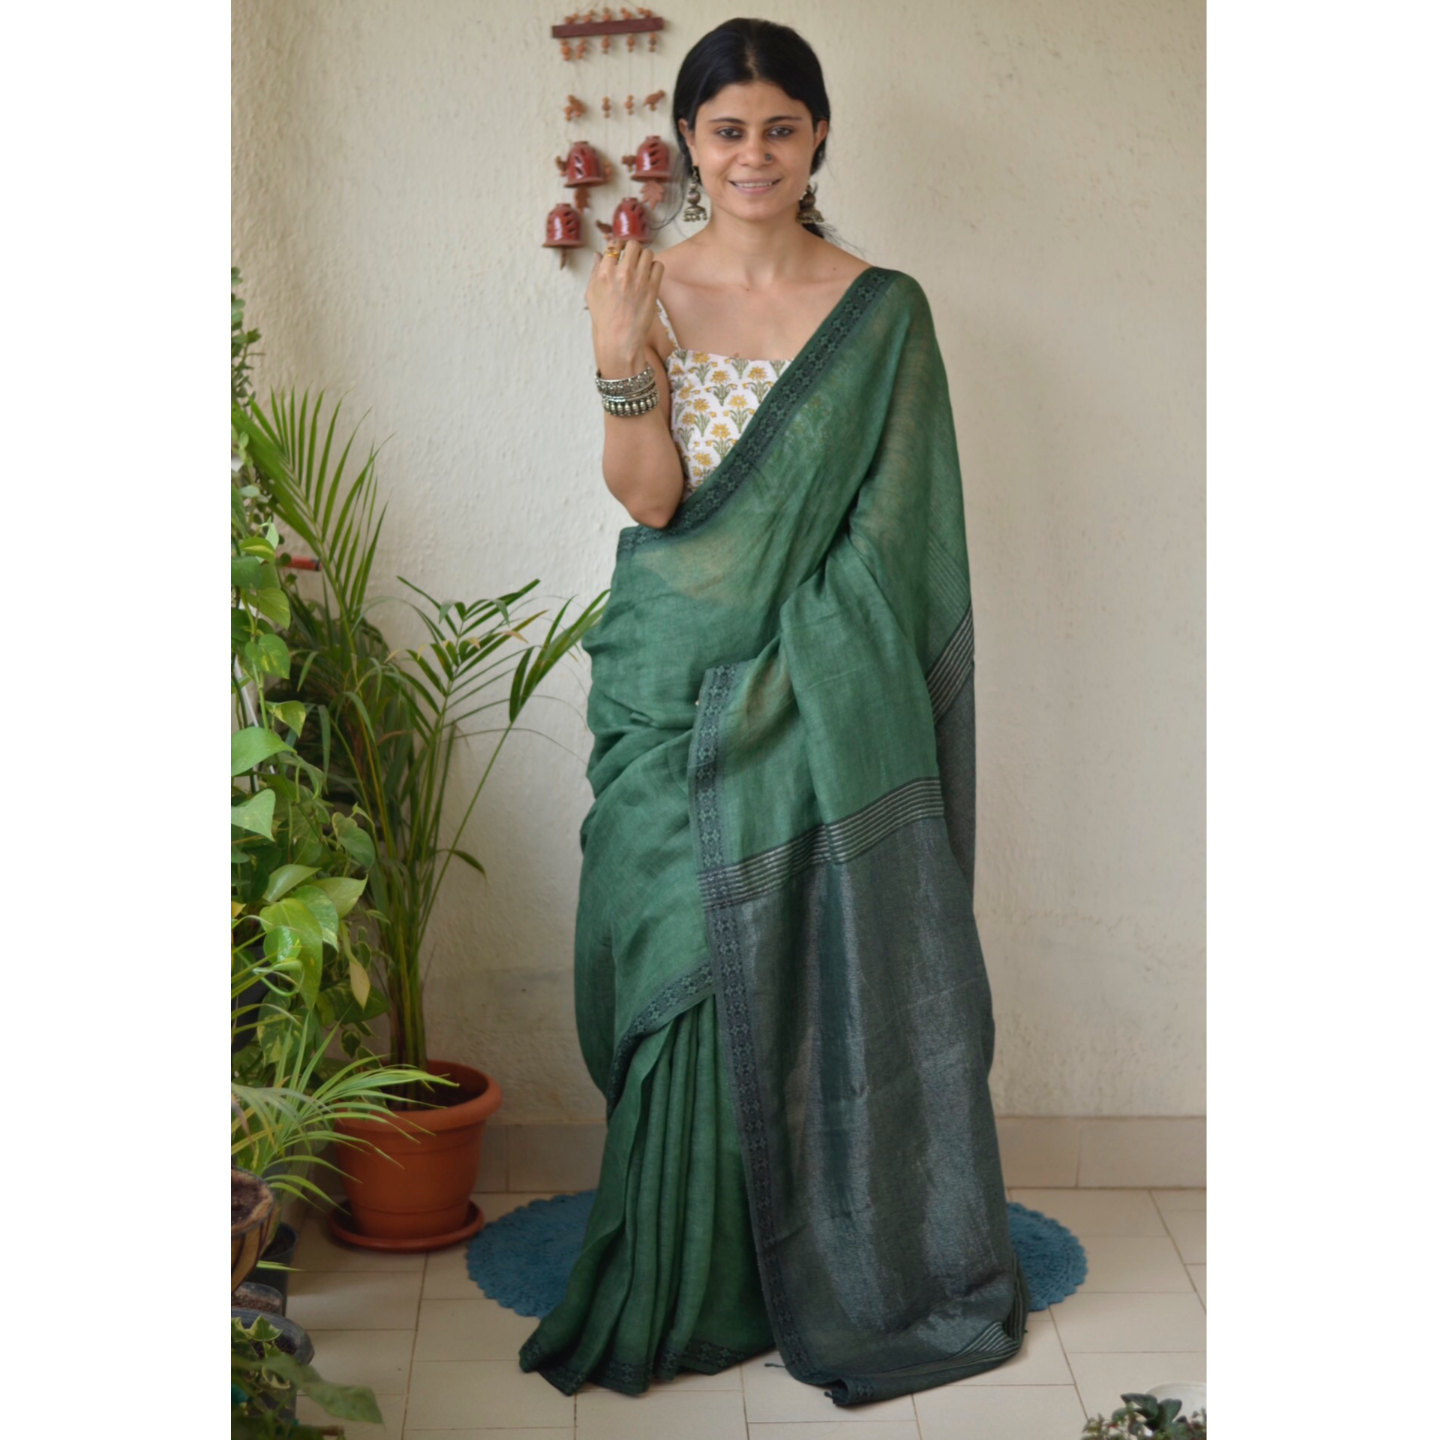 Handwoven linen saree with woven embroidered